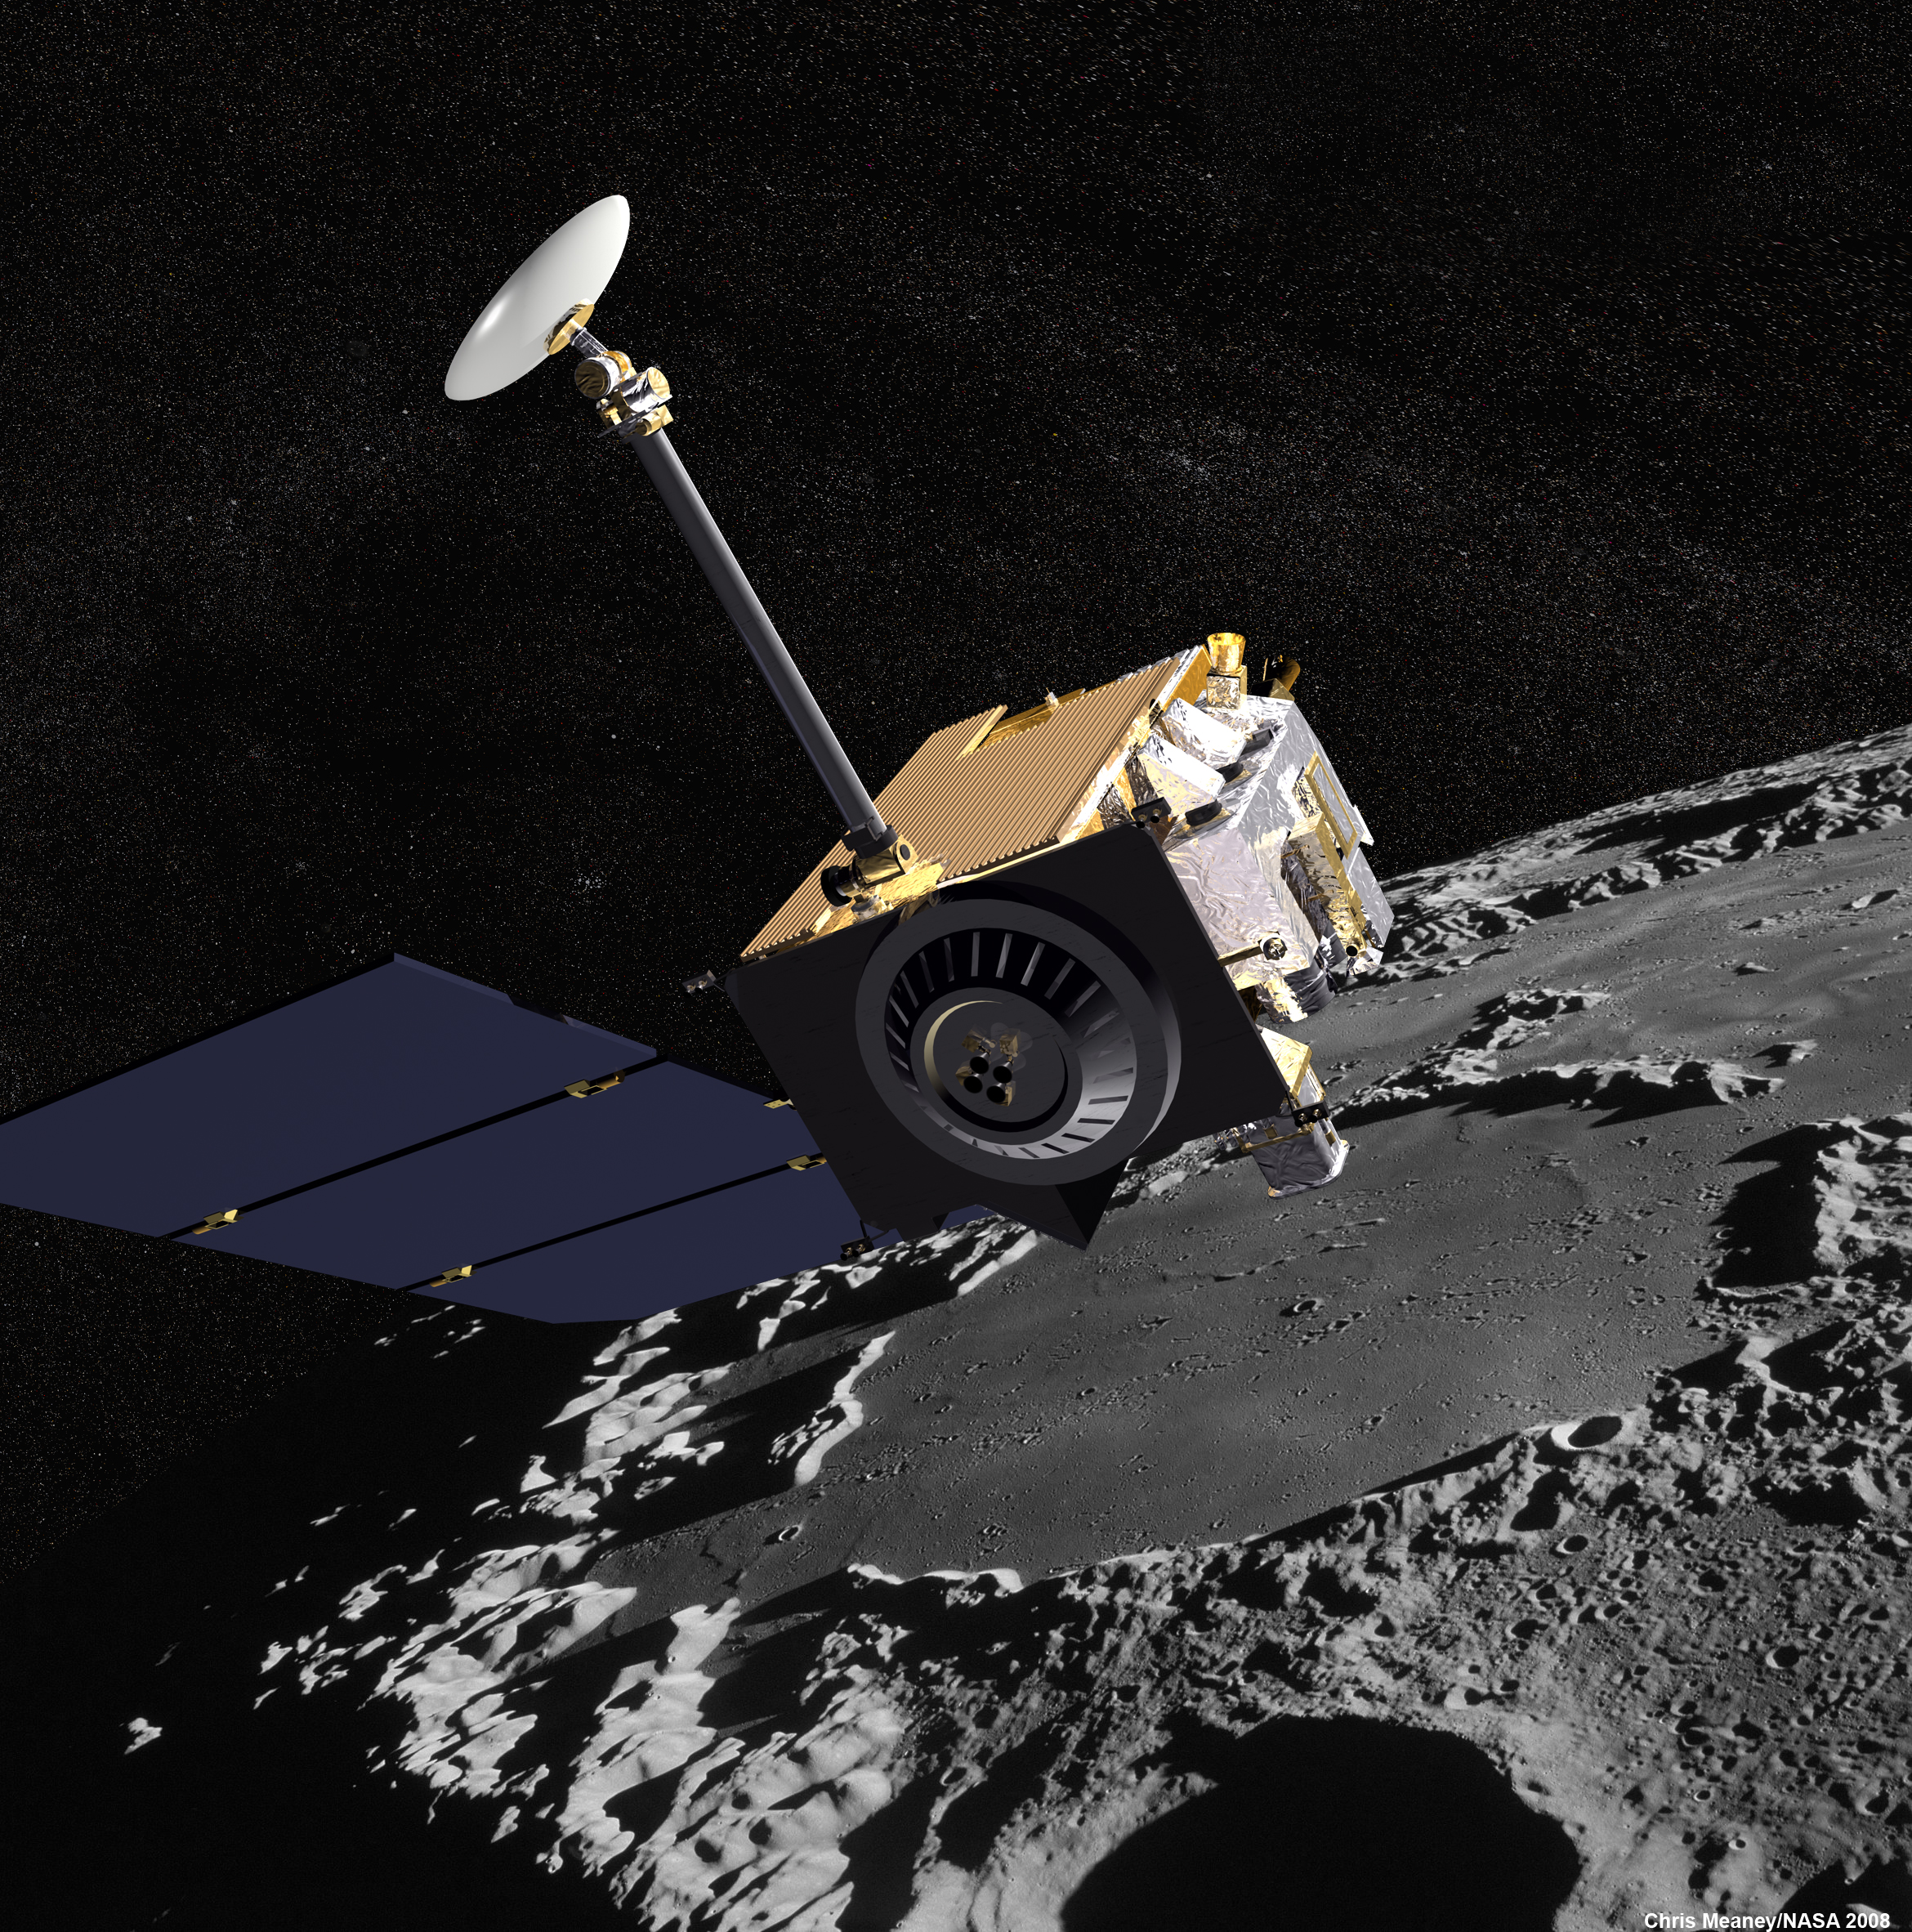 Moon probe's impact crater found – Astronomy Now